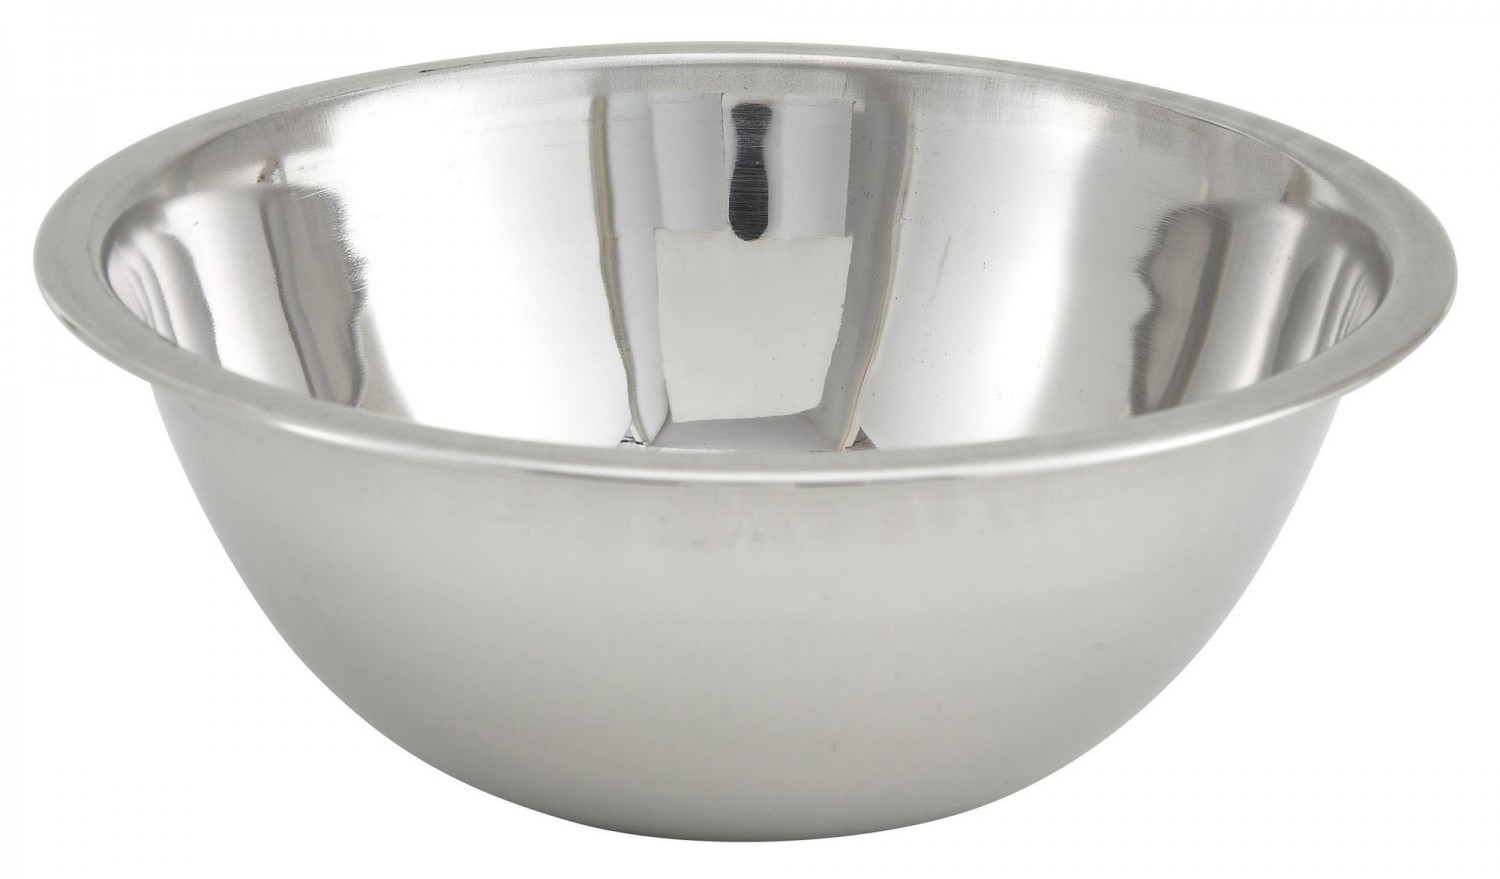 Winco MXB-400Q Stainless Steel Economy Mixing Bowl 4 Qt.